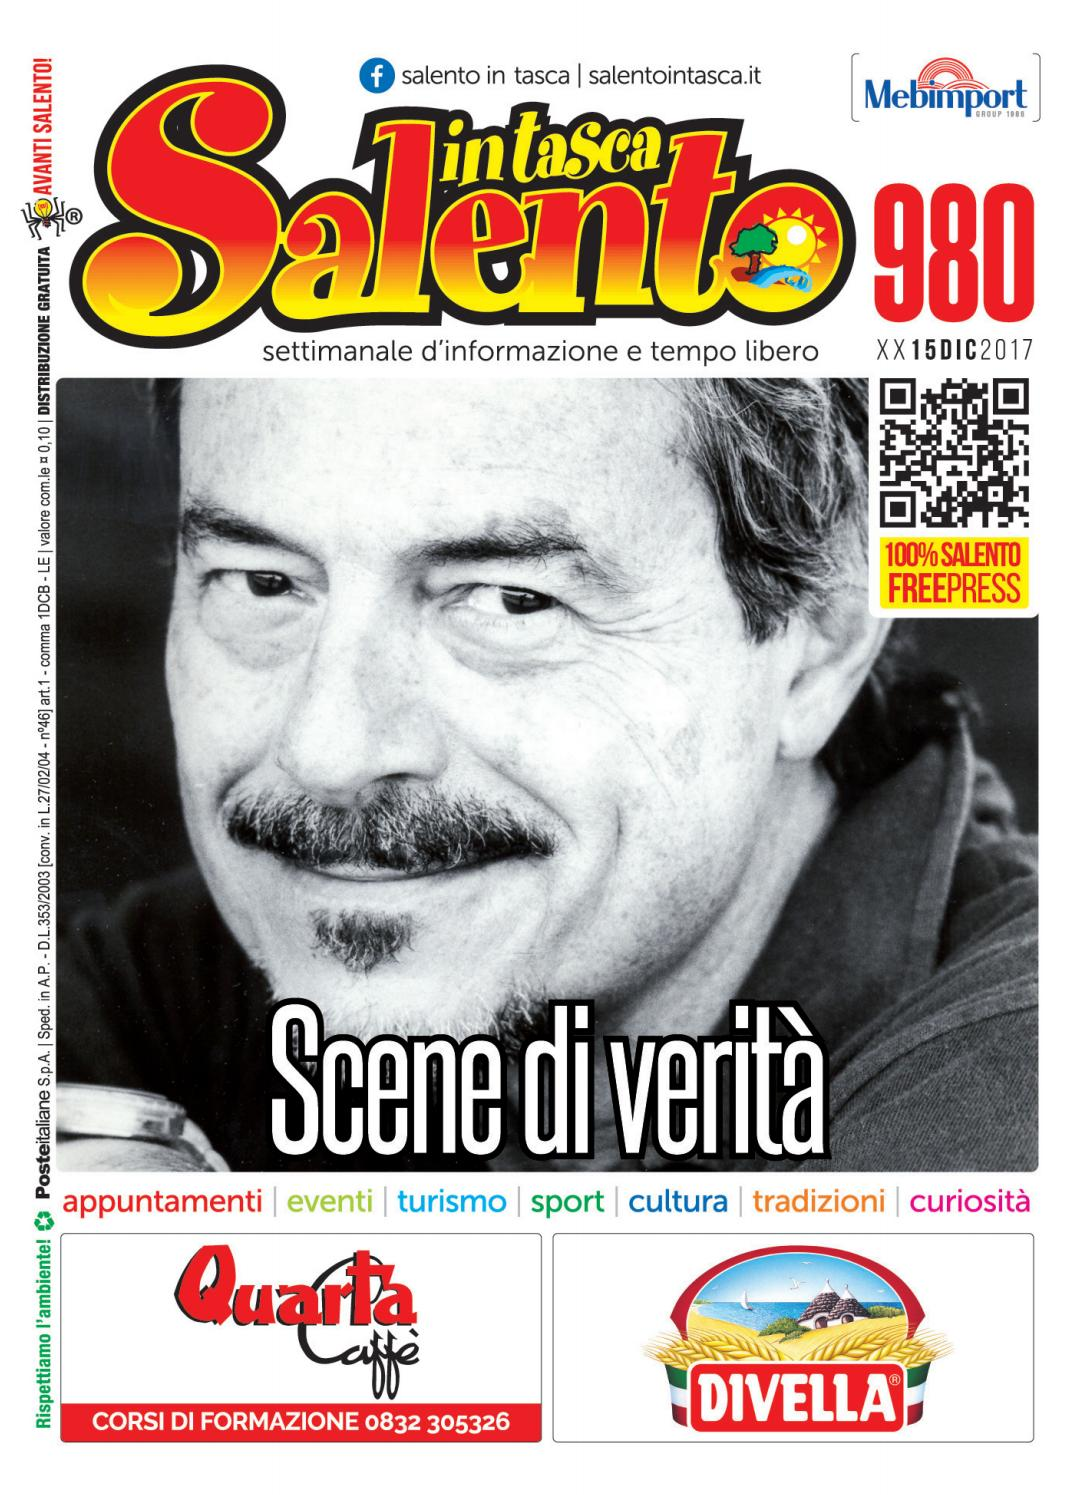 SALENTO IN TASCA 980 by SALENTO IN TASCA - issuu a888be2283f